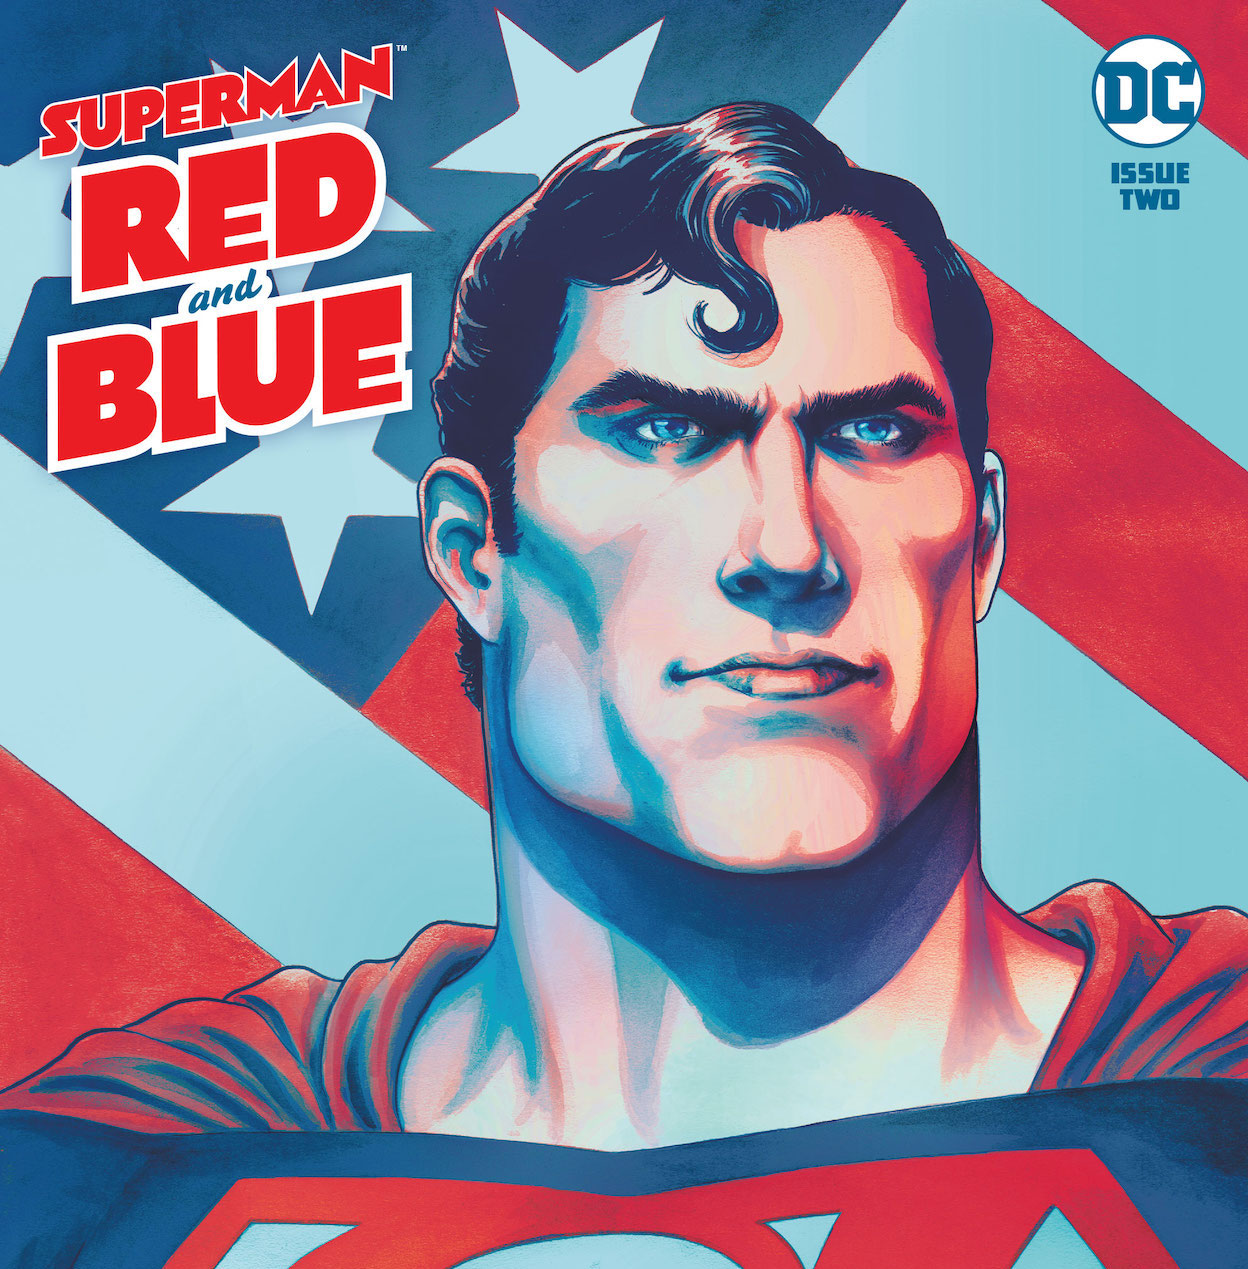 Superman-Red-and-Blue-2-1-1